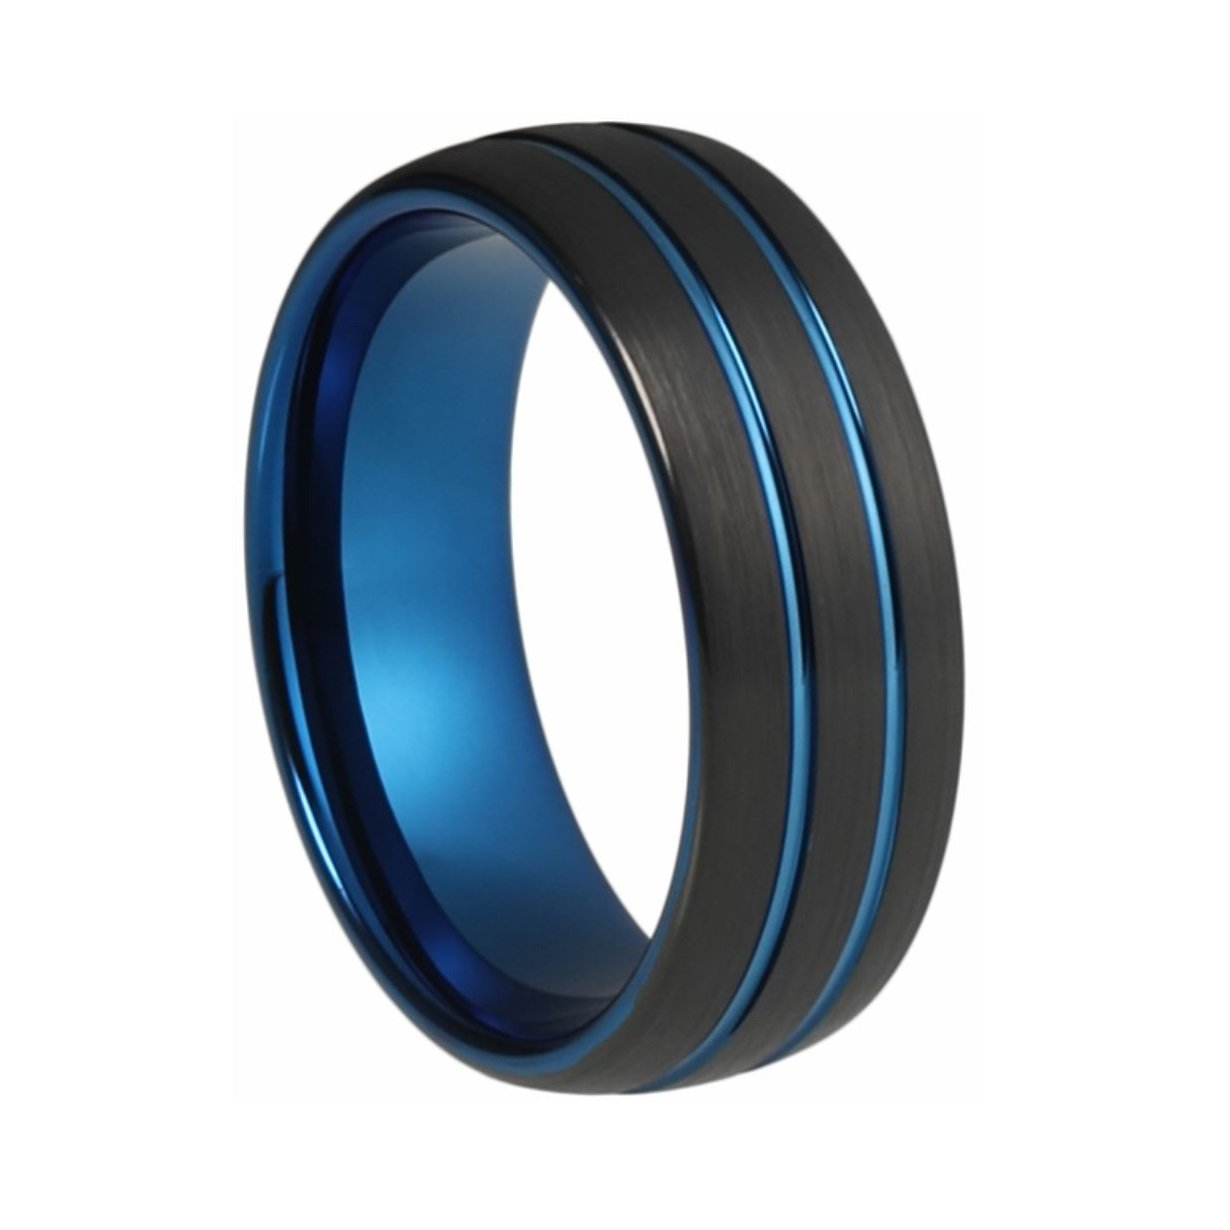 inlay ring black mens band rings jewelry wood fj tungsten wry wedding bling